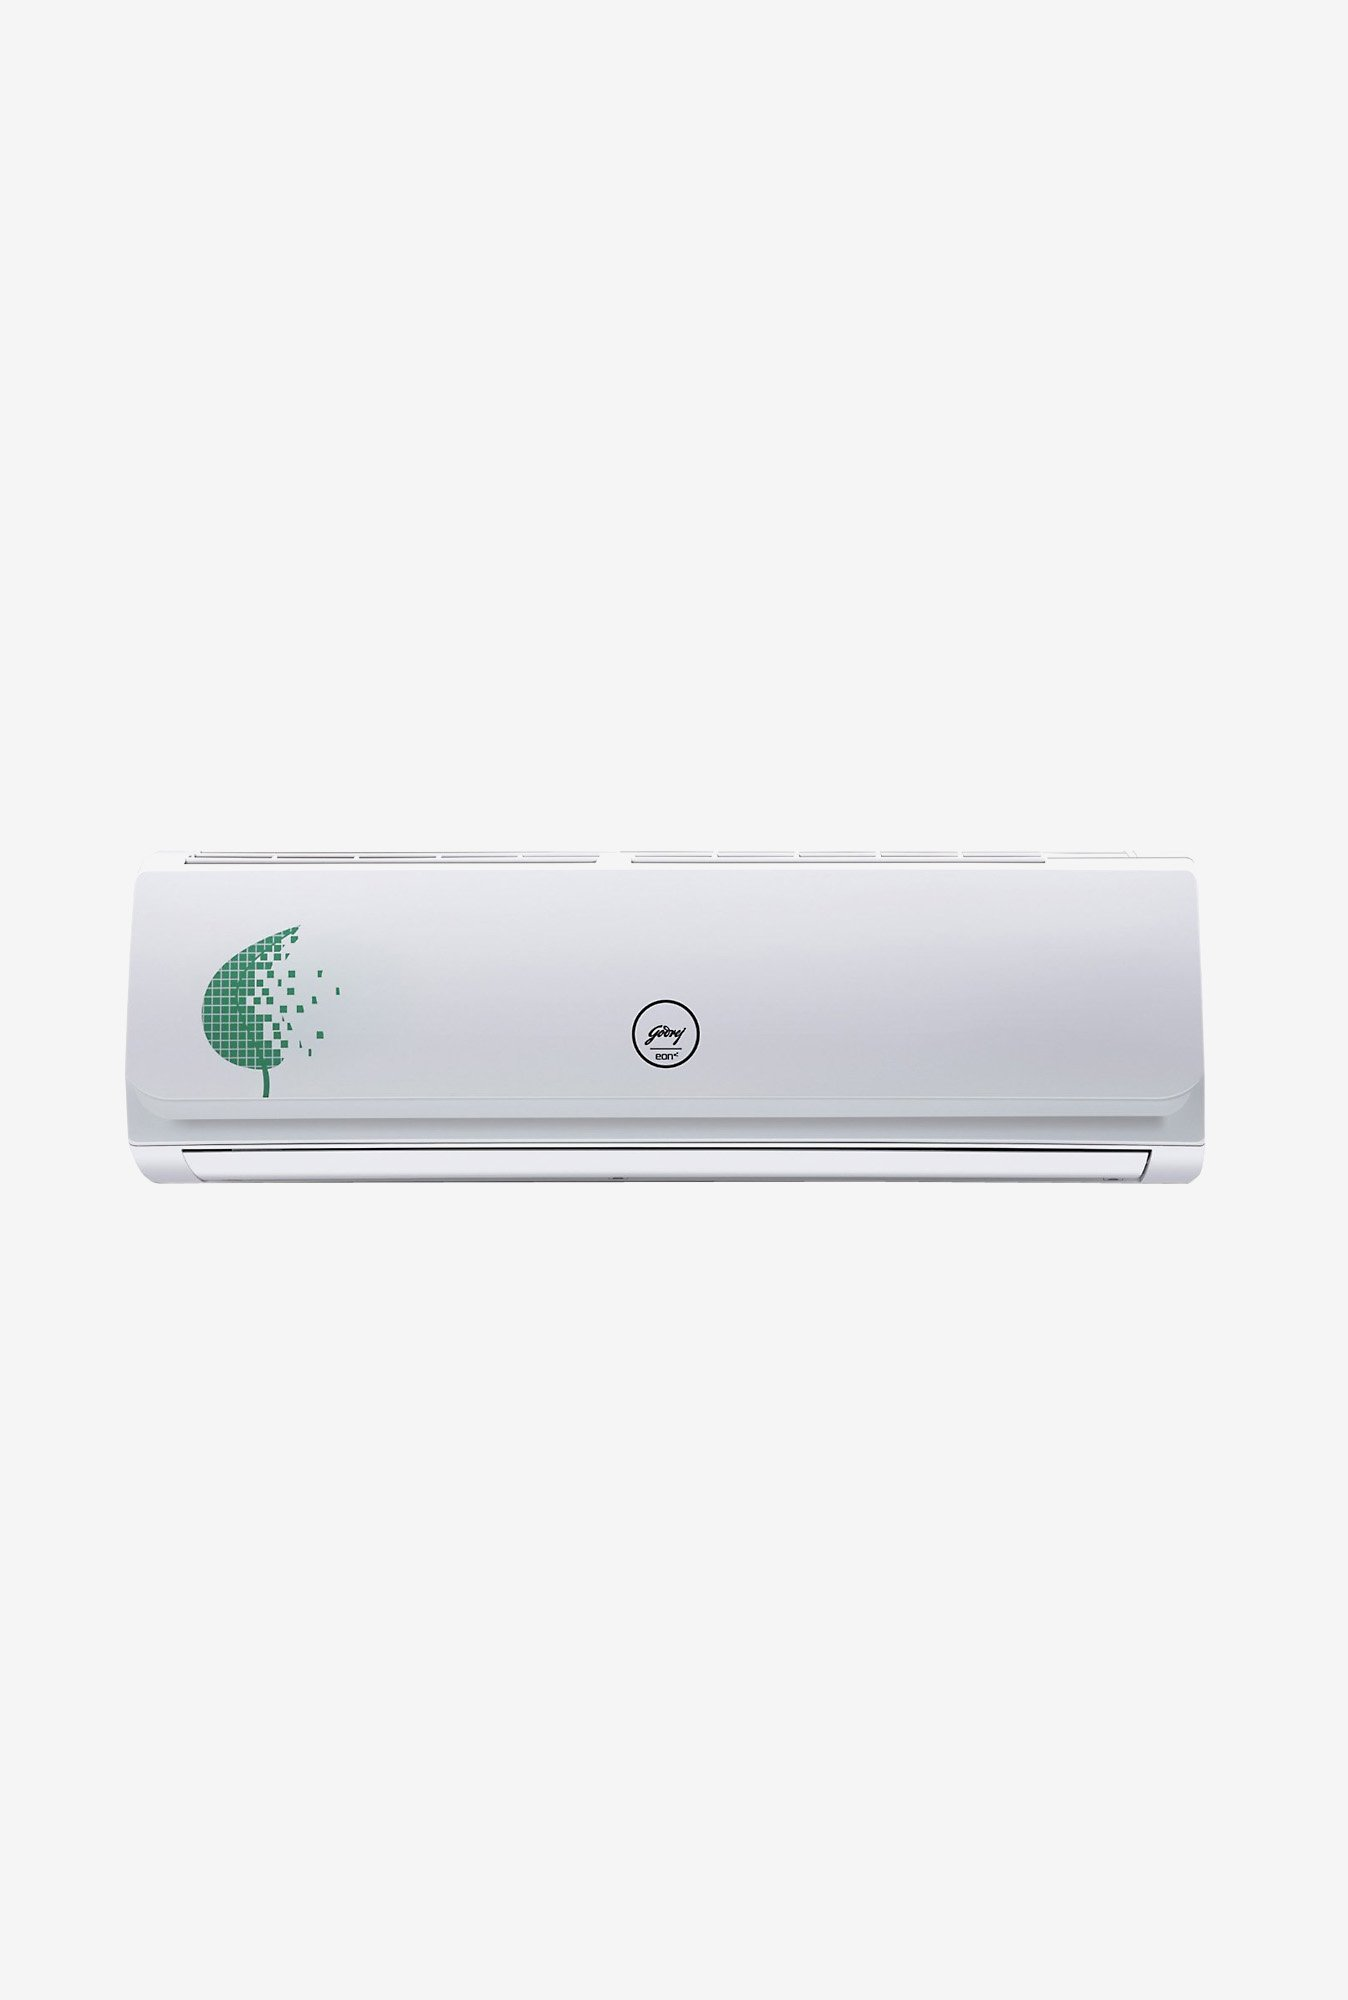 Godrej GSC18FGA5WOG 1.5 Ton 5 Star (BEE Rating 2017) Split AC (White)